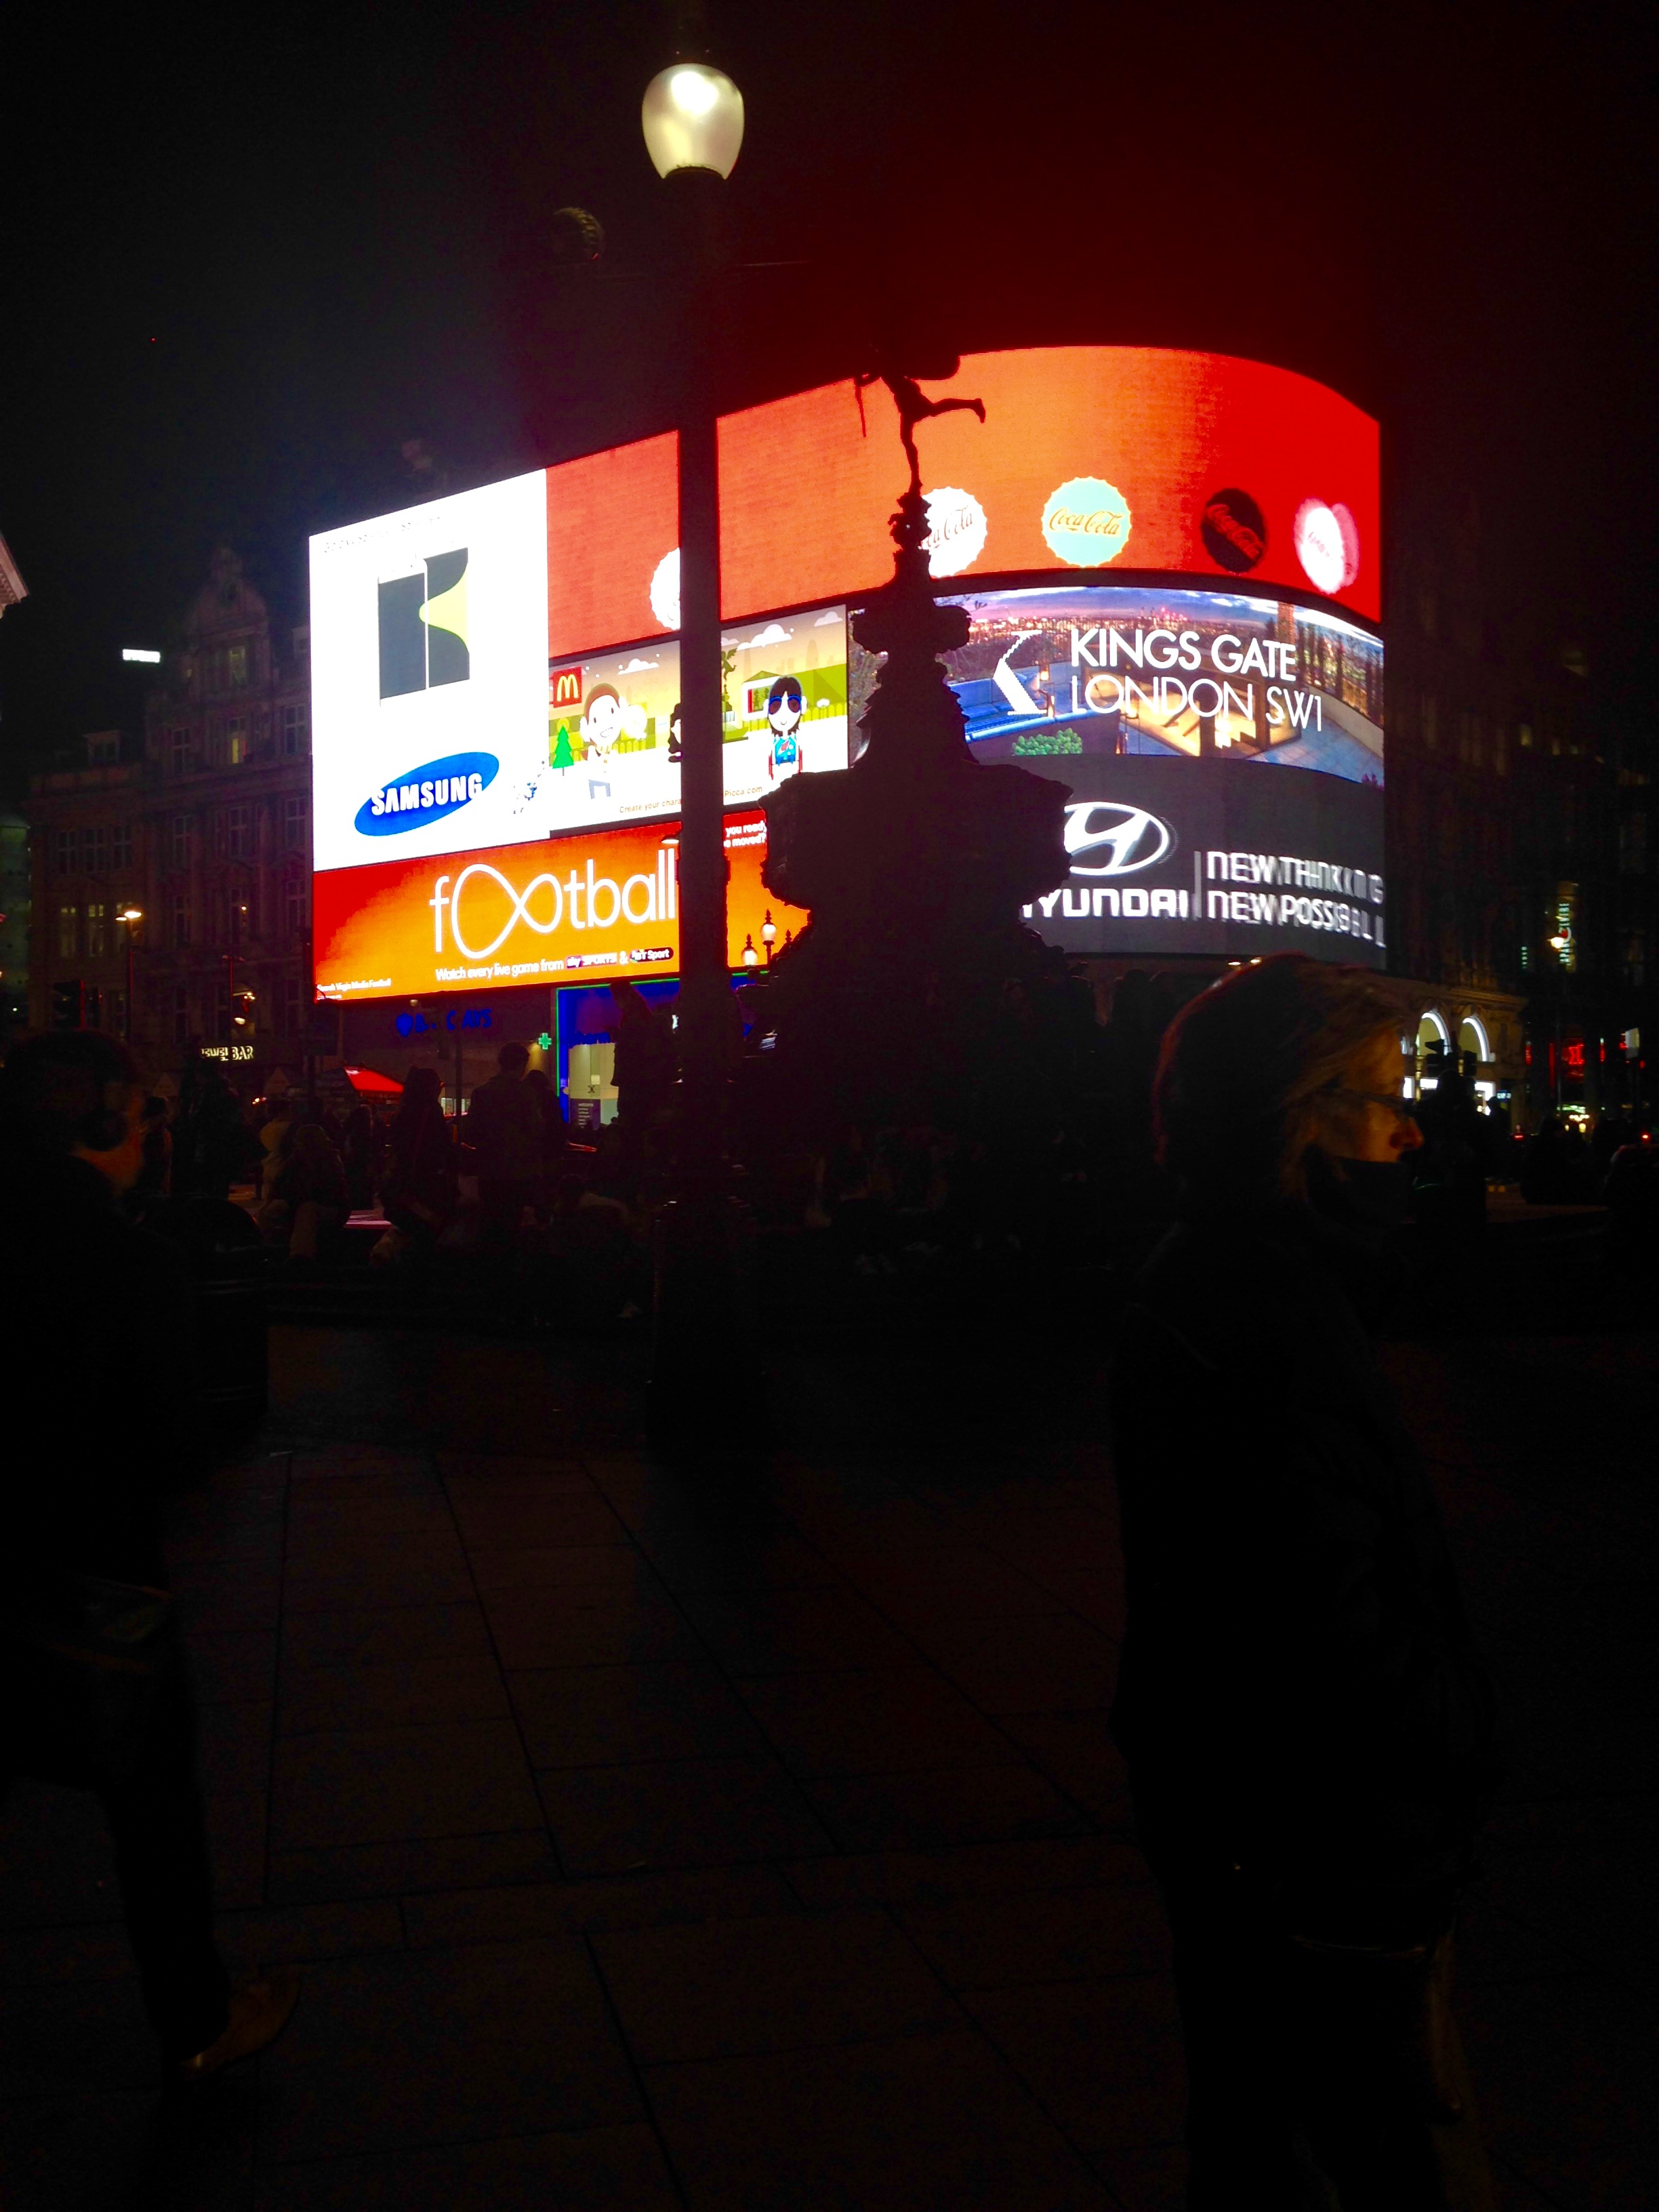 London's Piccadilly Circus, January 2016